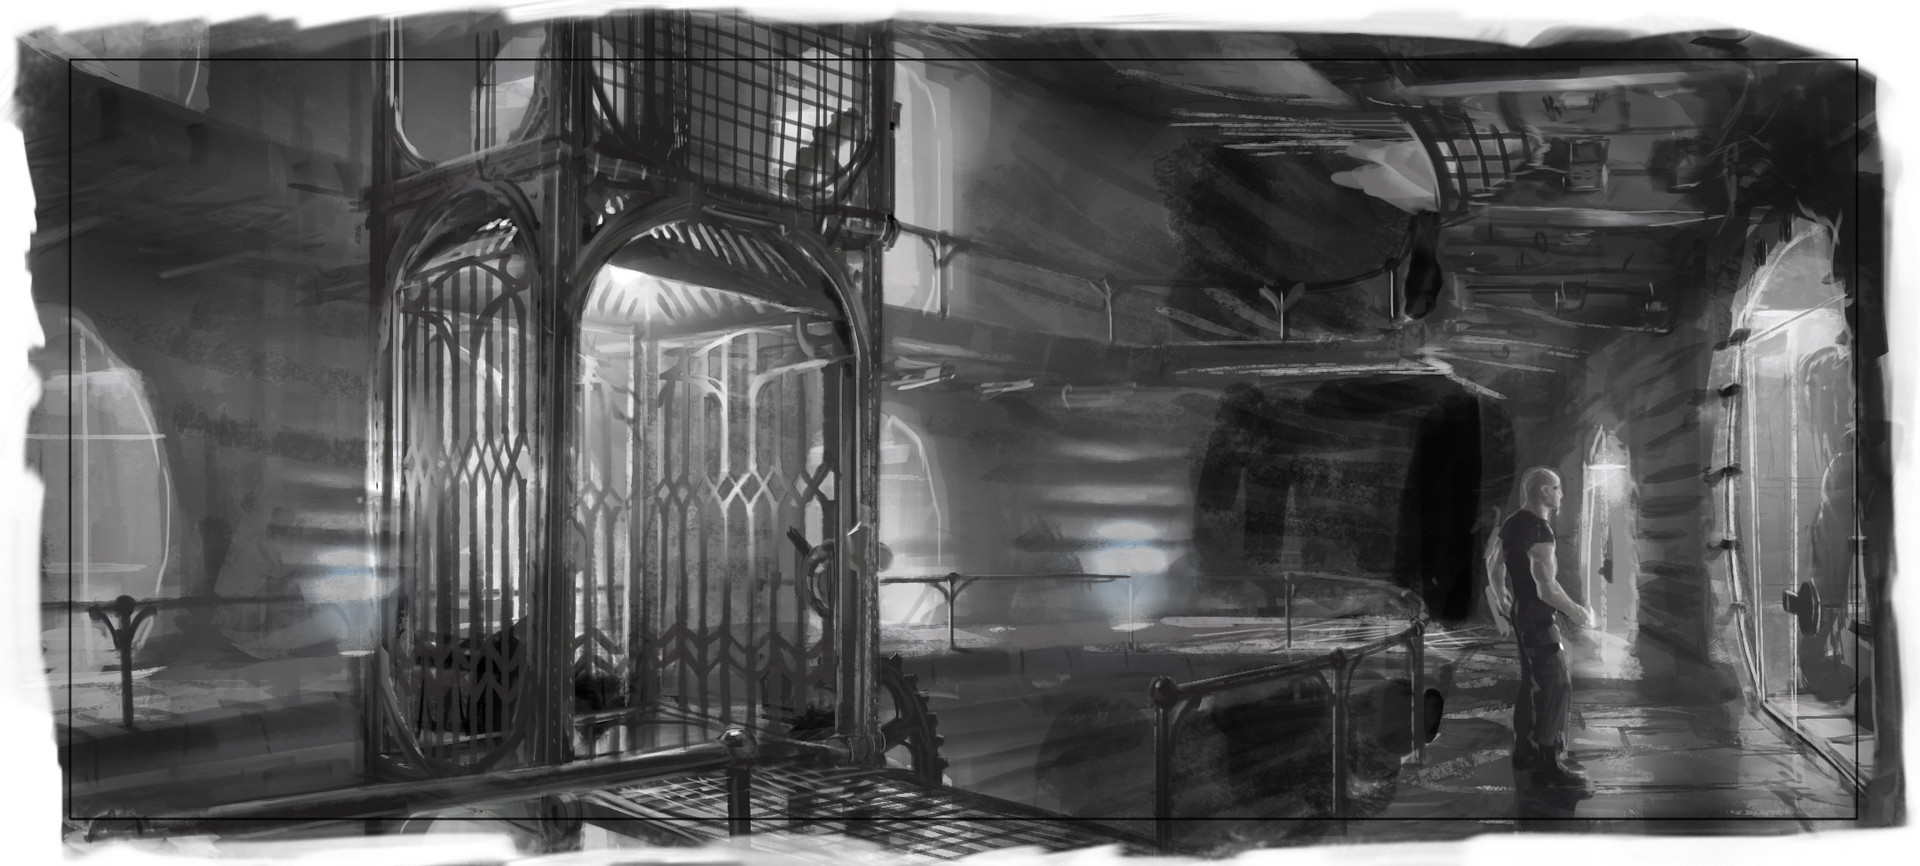 The first B&W thumbnail I did to establish the look. I'll generally lay out four of these on a page and work on them simultaneously.